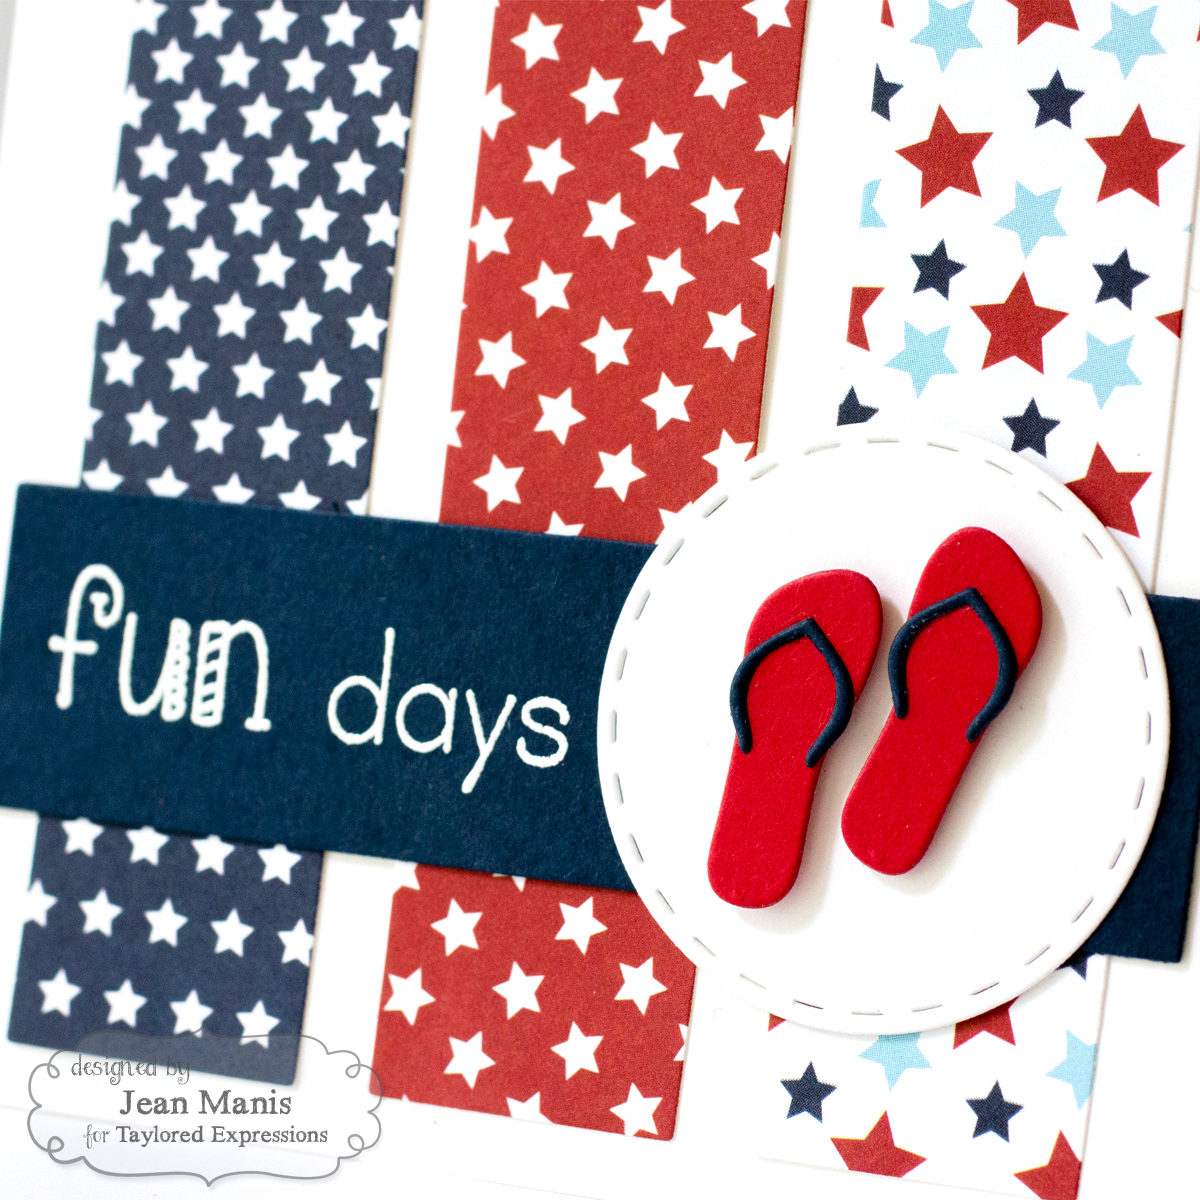 Hooray for Red, White and Blue – TE Share Joy #39